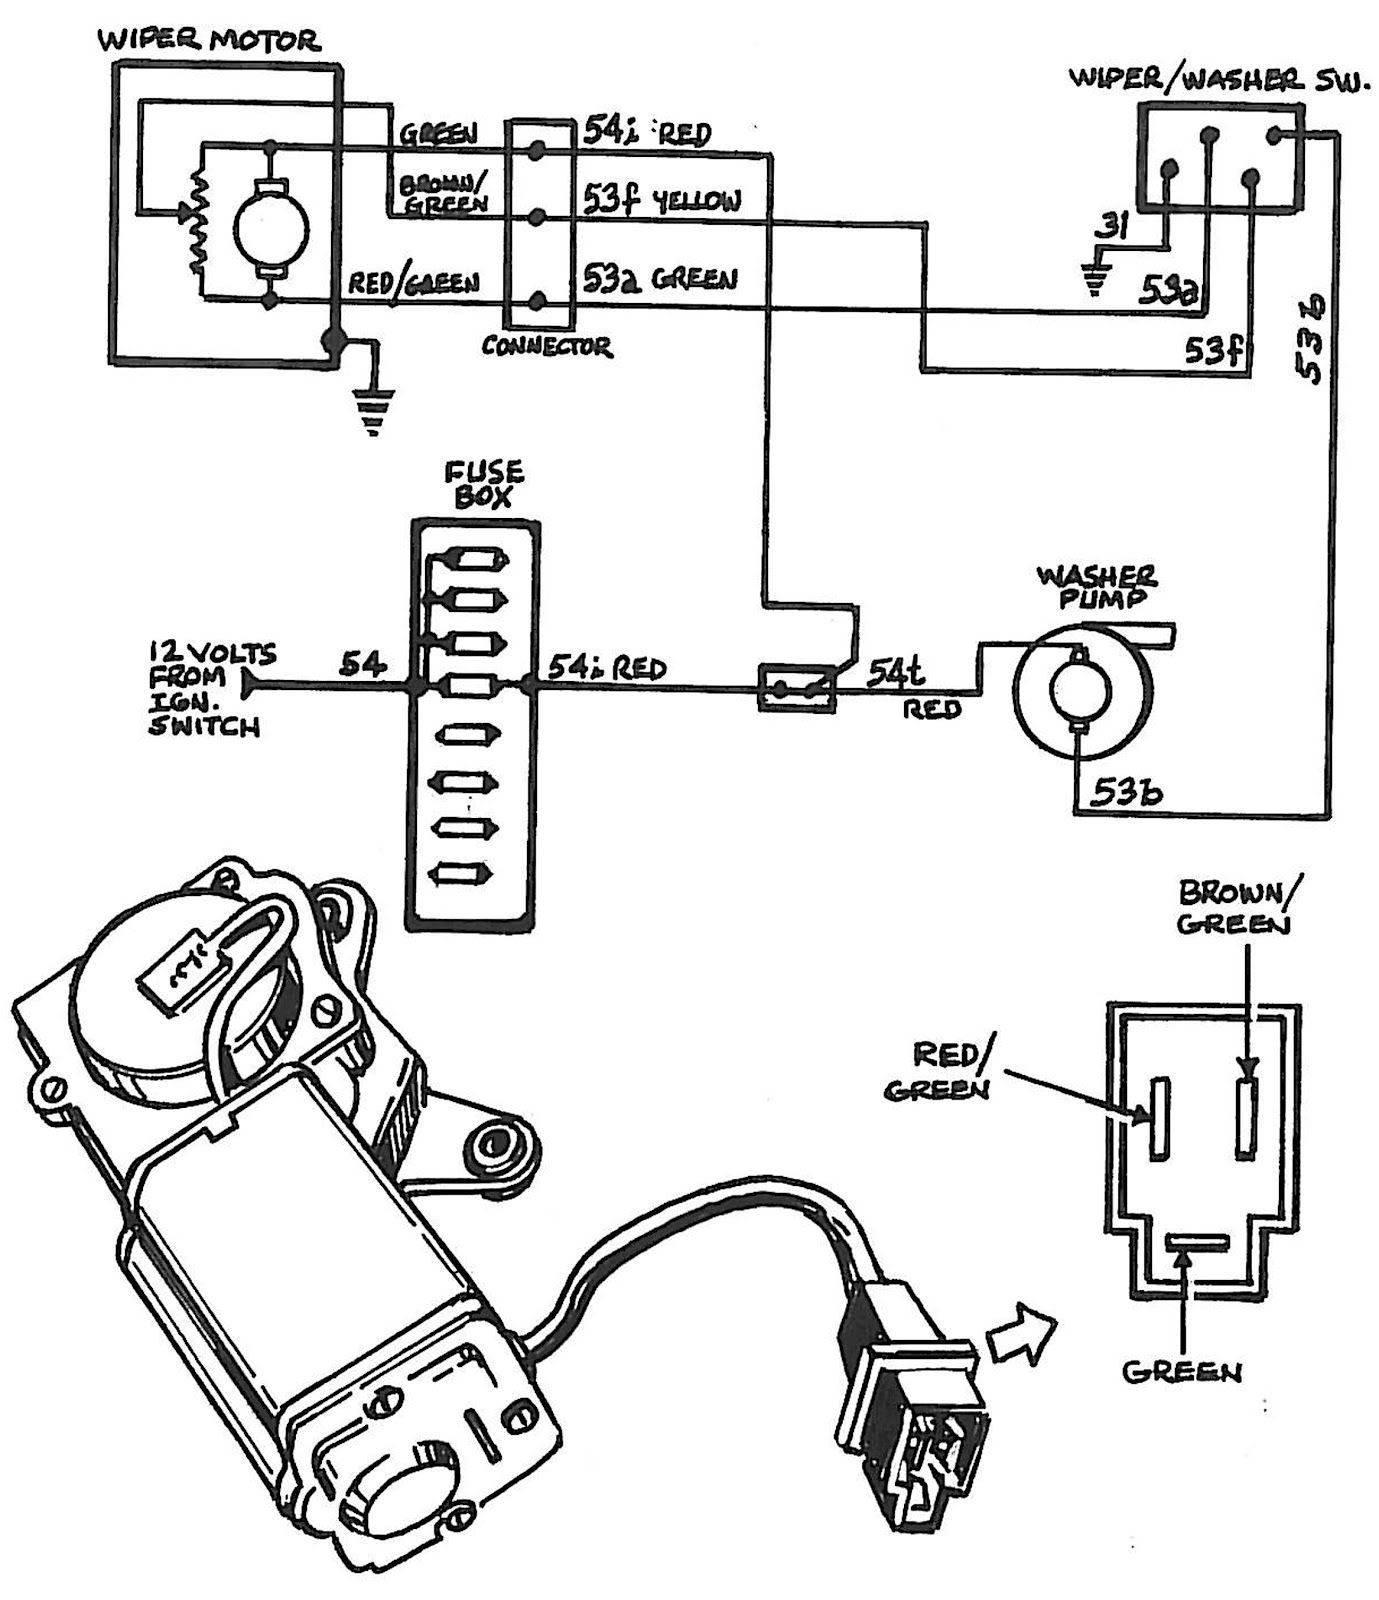 Get 27+] Windshield Wiper 5 Wire Wiper Motor Wiring Diagram | Windshield  wipers, Windshield, Ford explorer | Windshield Wiper Wiring Diagrams |  | Pinterest